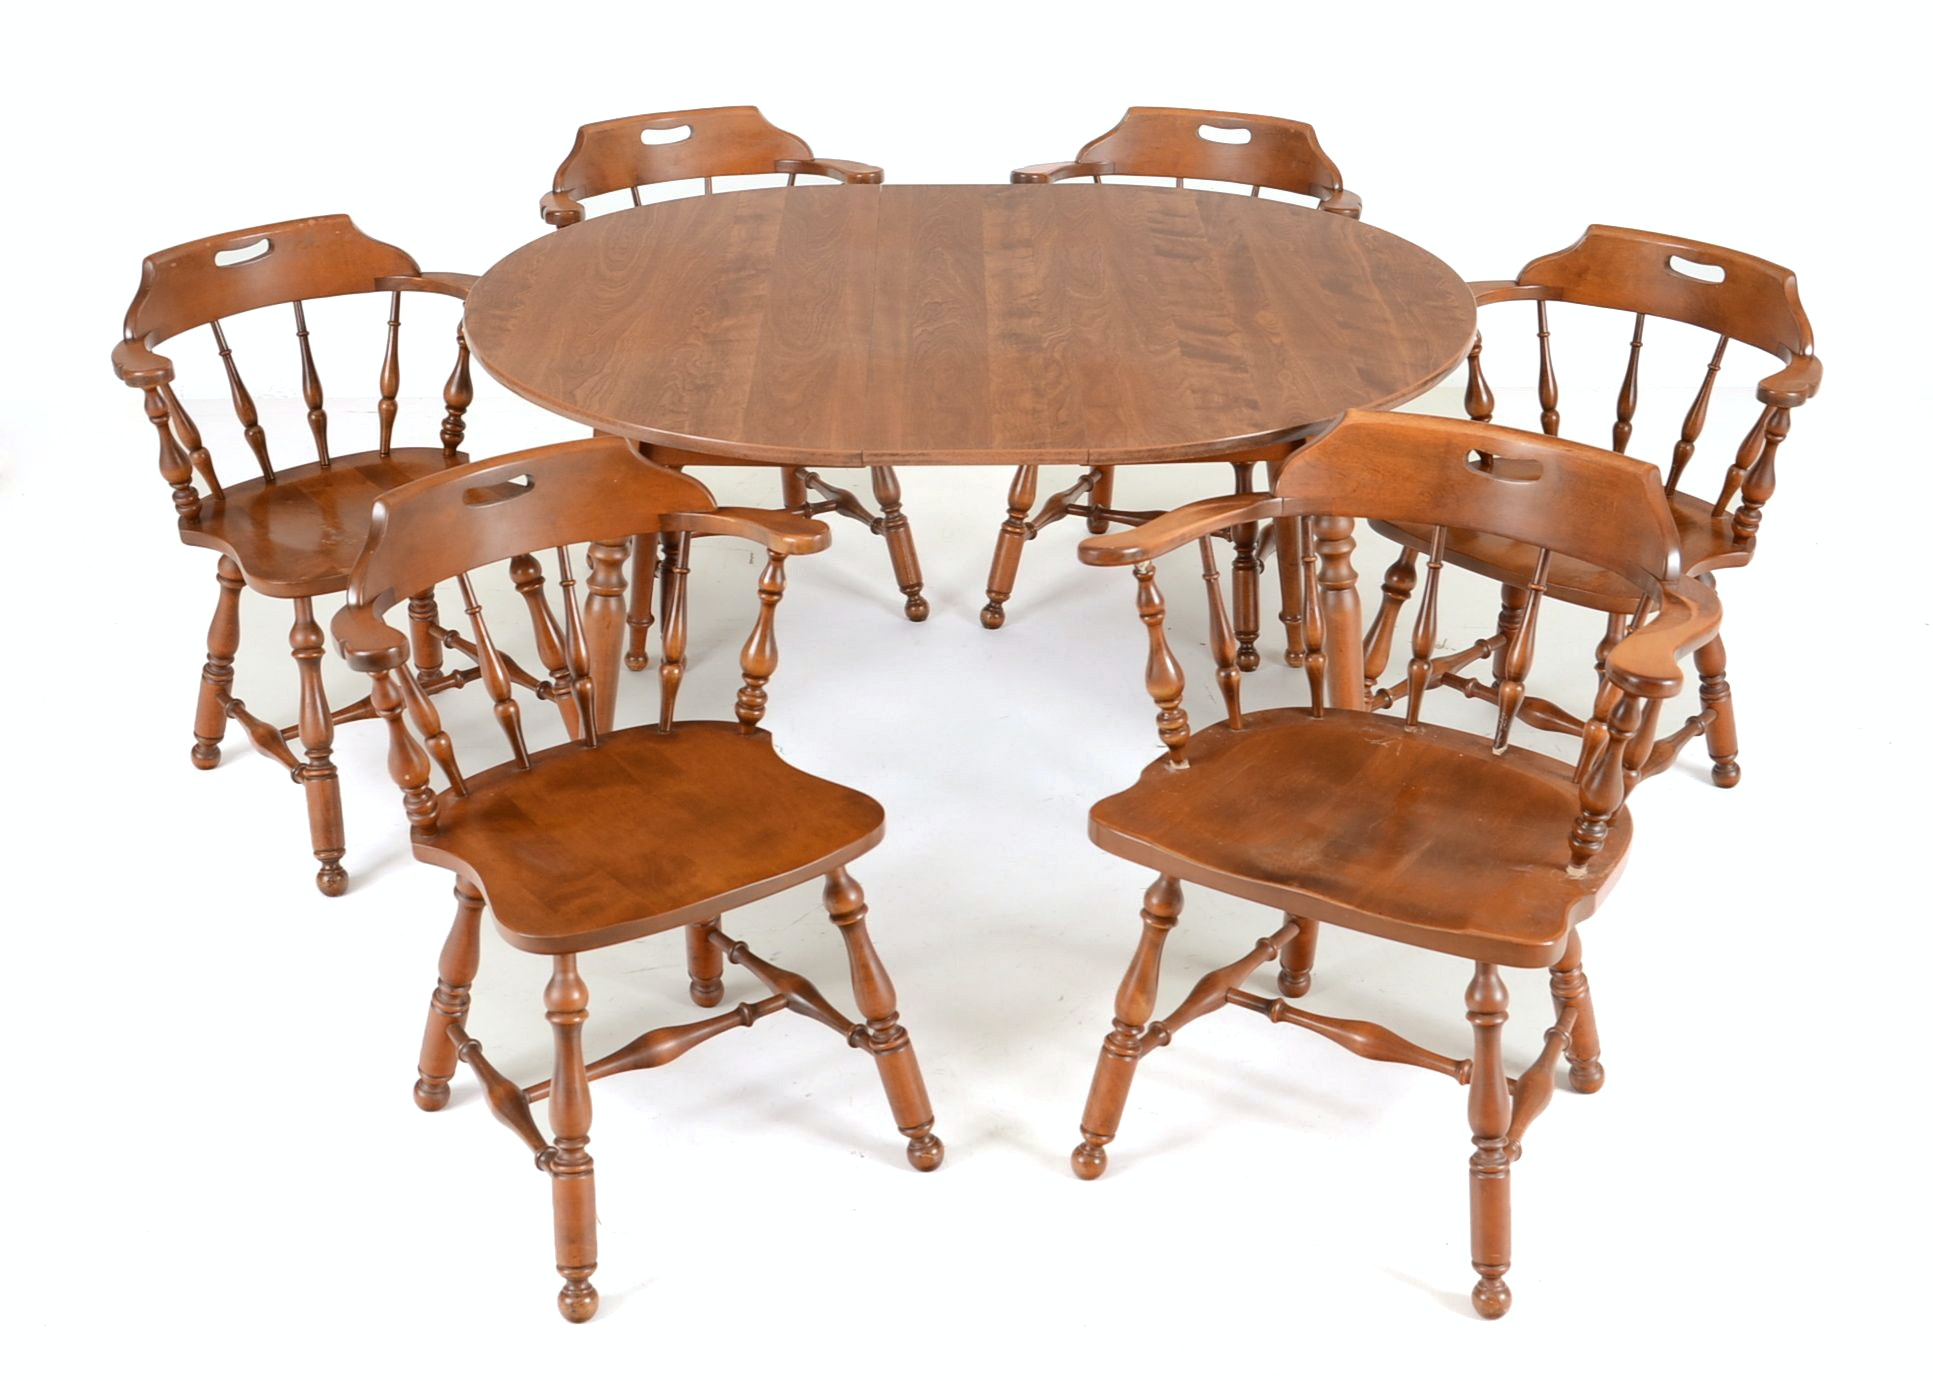 93 dining room chairs early american the traditionalist dining room furniture chairs